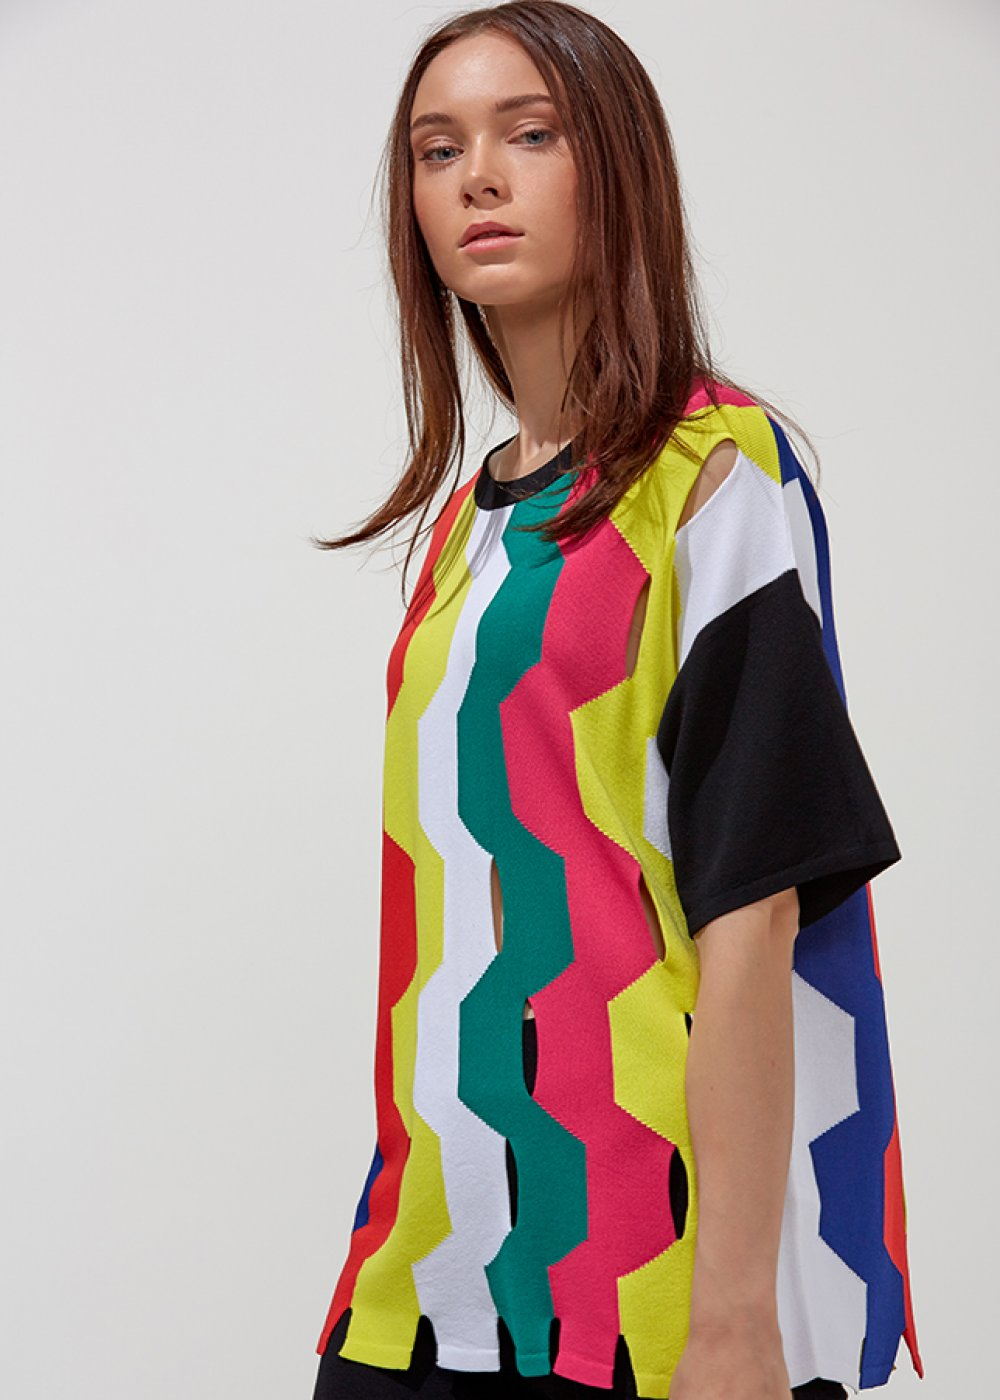 CUT OUT PATTERNED COLORFUL KNIT TOP